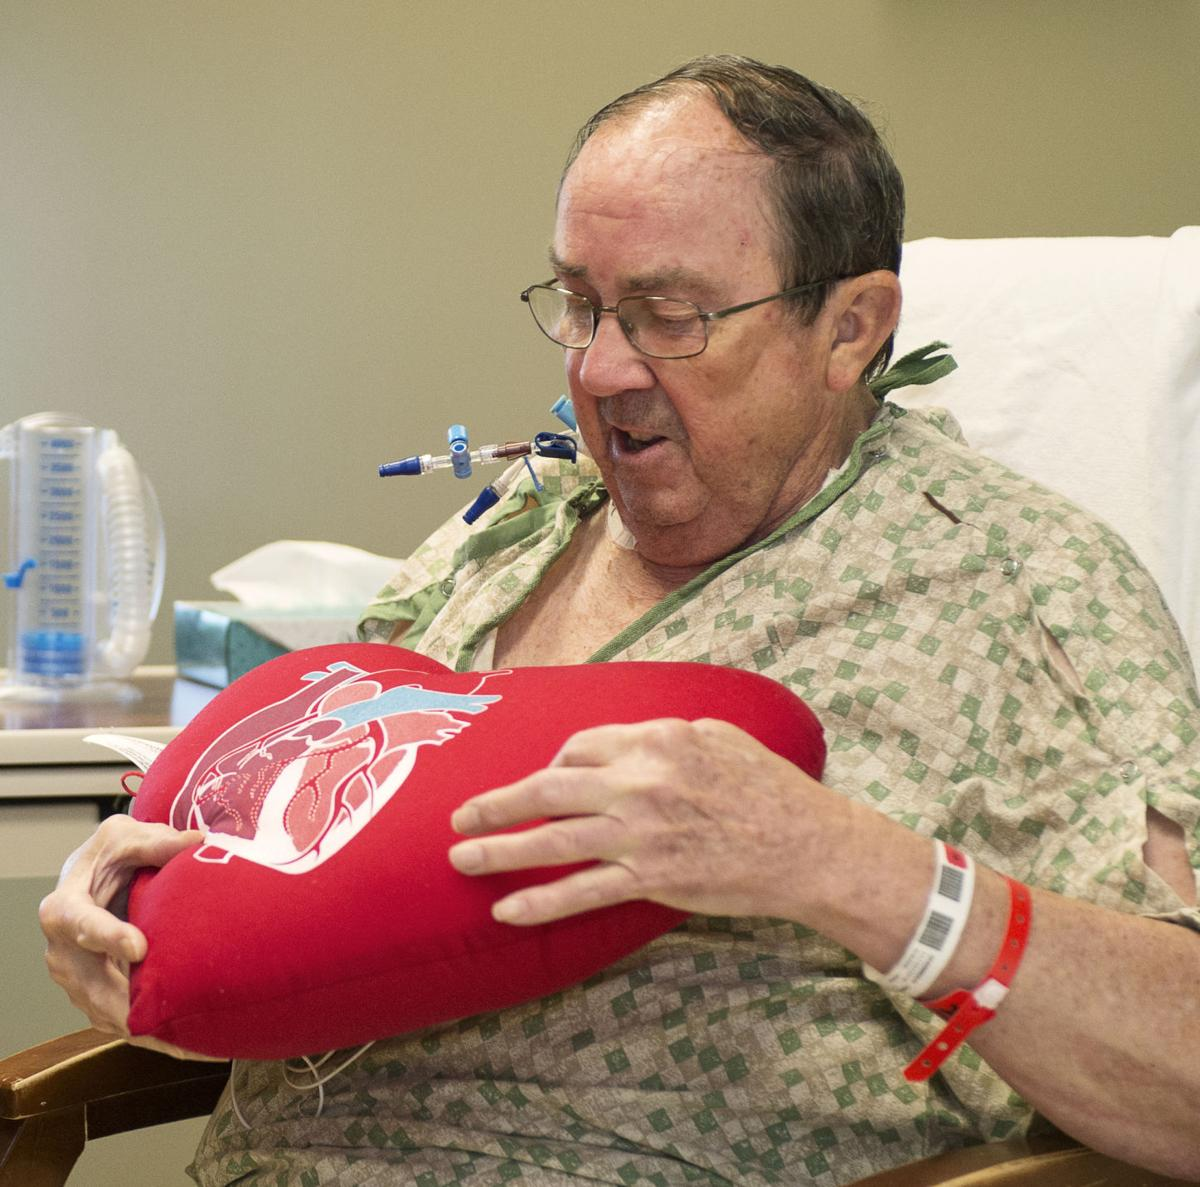 Lincoln Doctors Replace Heart Valve Without General